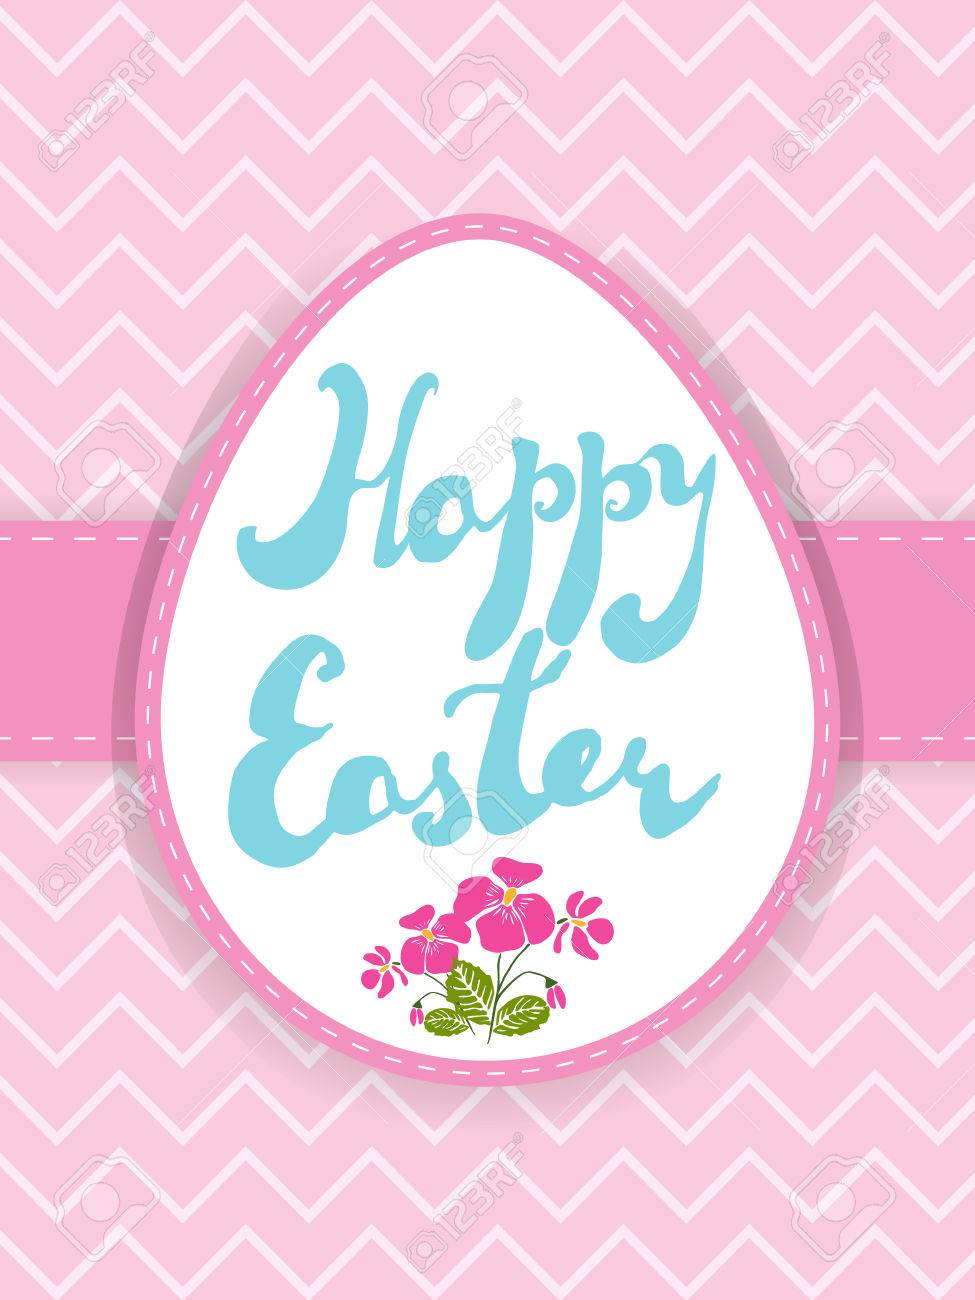 graphic about Printable Easter Card identify Printable Easter greeting card. Handwritten terms